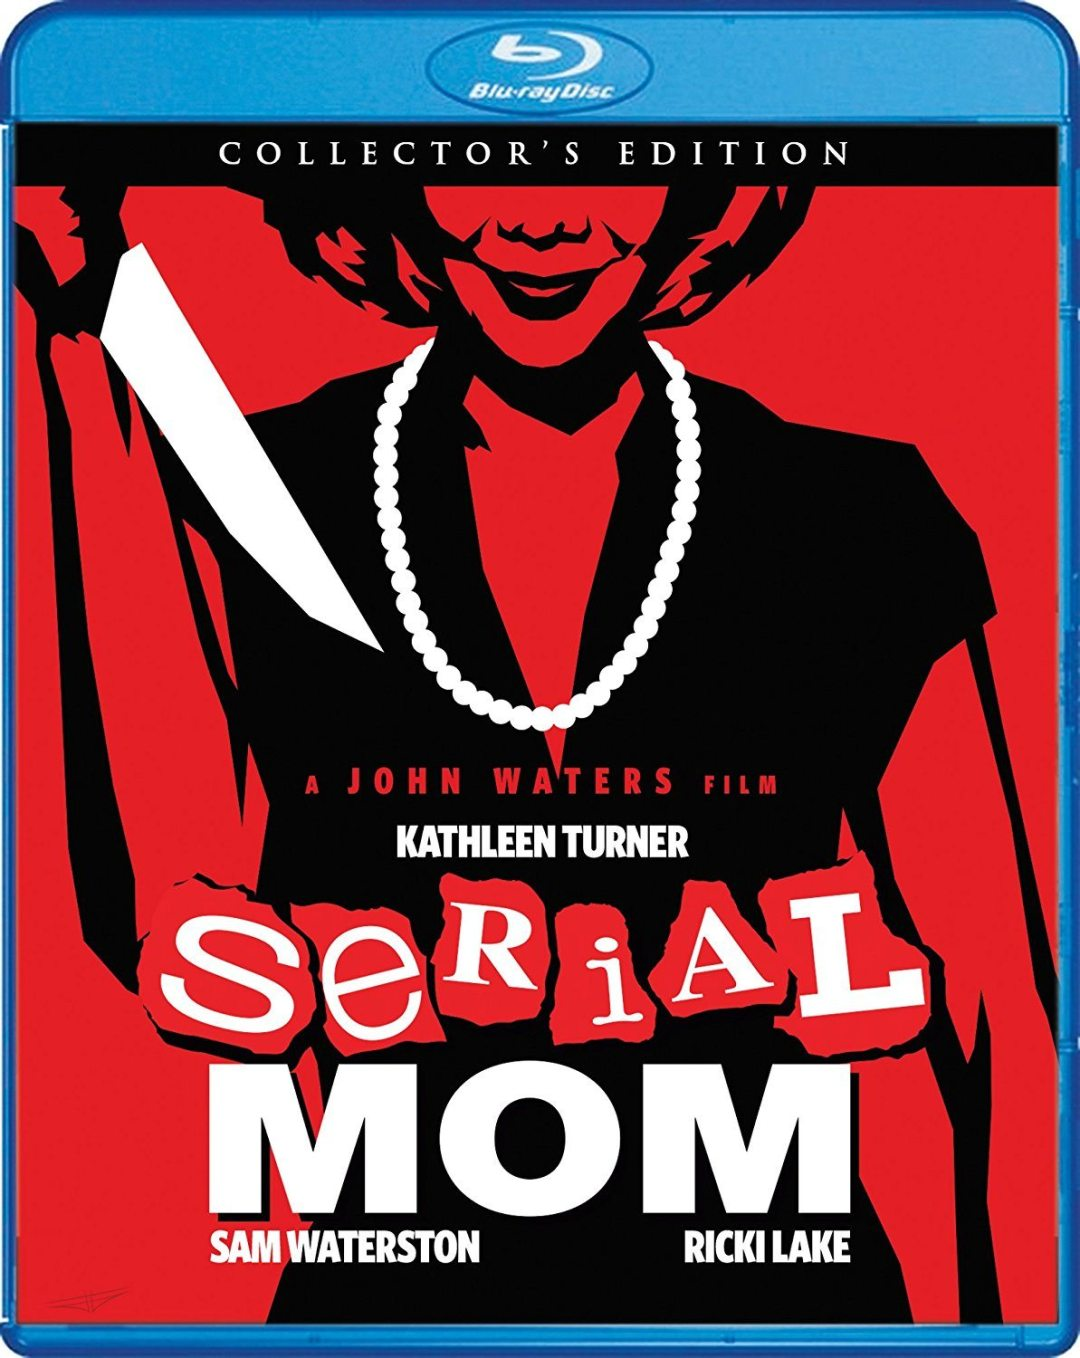 Serial Mom – Blu-ray/DVD Review